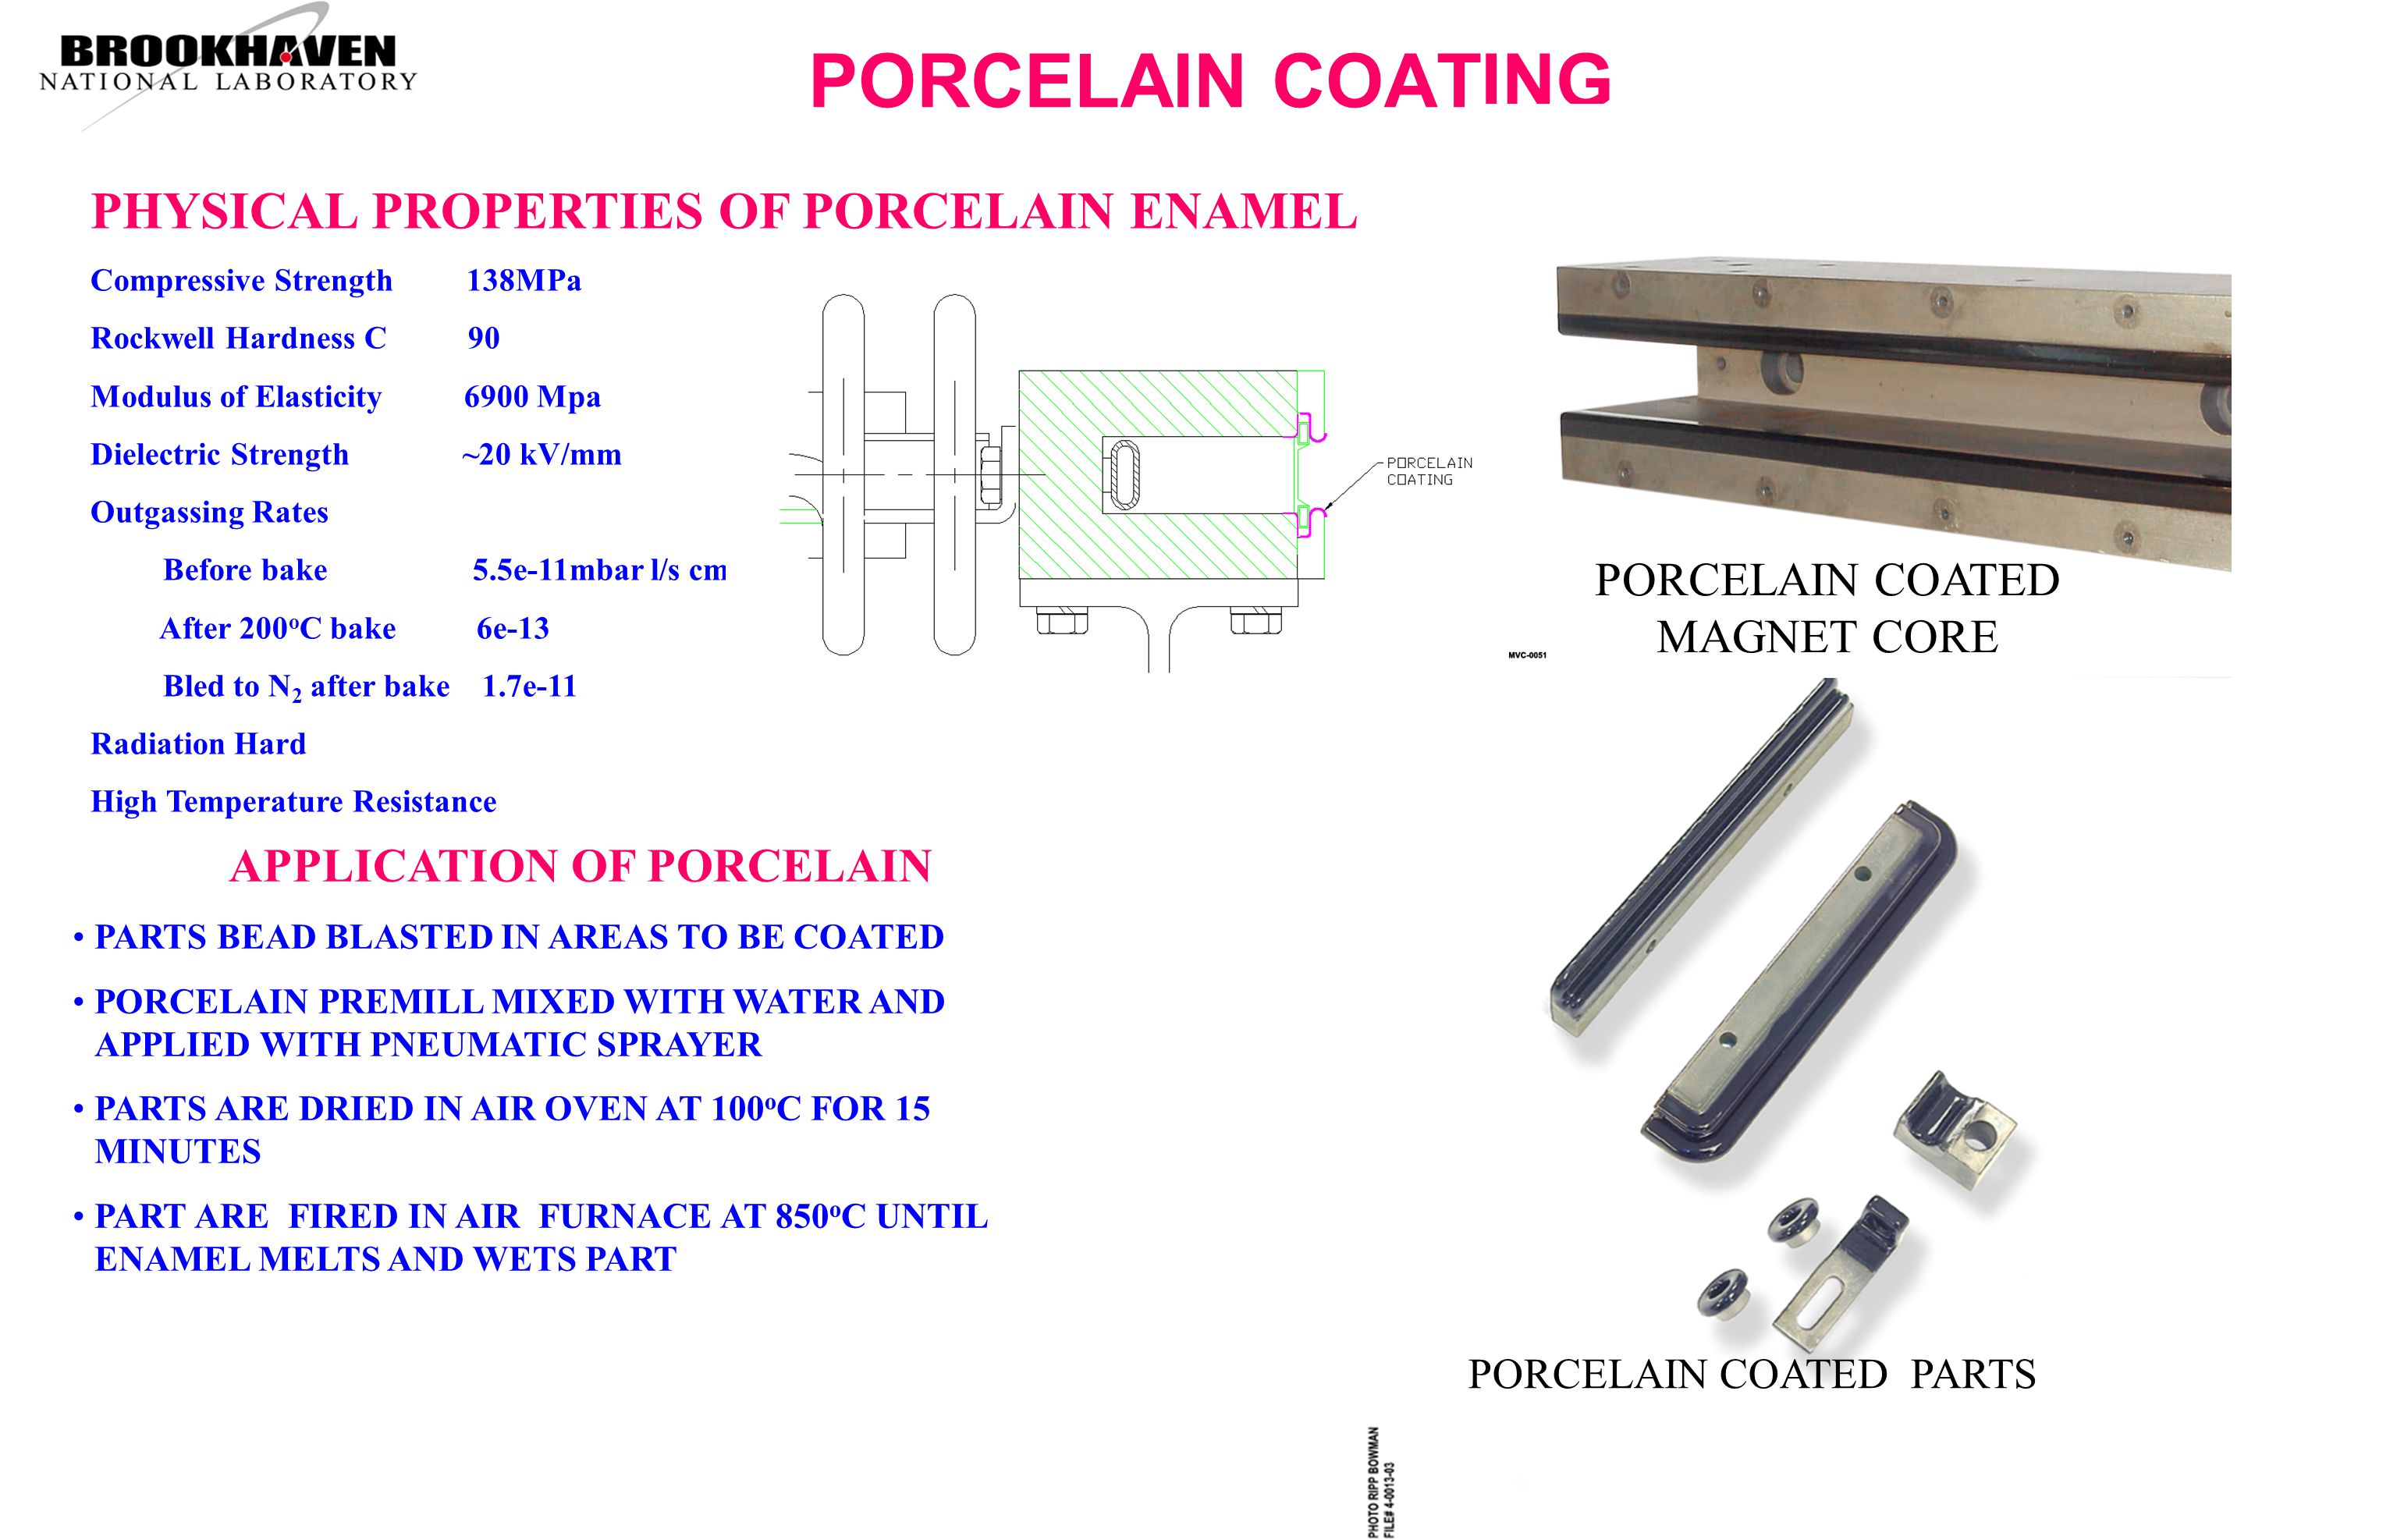 PORCELAIN COATING PHYSICAL PROPERTIES OF PORCELAIN ENAMEL Compressive Strength 138MPa Rockwell Hardness C 90 Modulus of Elasticity 6900 Mpa Dielectric Strength ~20 kV/mm Outgassing Rates Before bake 5.5e-11mbar l/s cm 2 After 200 o C bake 6e-13 Bled to N 2 after bake 1.7e-11 Radiation Hard High Temperature Resistance APPLICATION OF PORCELAIN PARTS BEAD BLASTED IN AREAS TO BE COATED PORCELAIN PREMILL MIXED WITH WATER AND APPLIED WITH PNEUMATIC SPRAYER PARTS ARE DRIED IN AIR OVEN AT 100 o C FOR 15 MINUTES PART ARE FIRED IN AIR FURNACE AT 850 o C UNTIL ENAMEL MELTS AND WETS PART PORCELAIN COATED PARTS PORCELAIN COATED MAGNET CORE